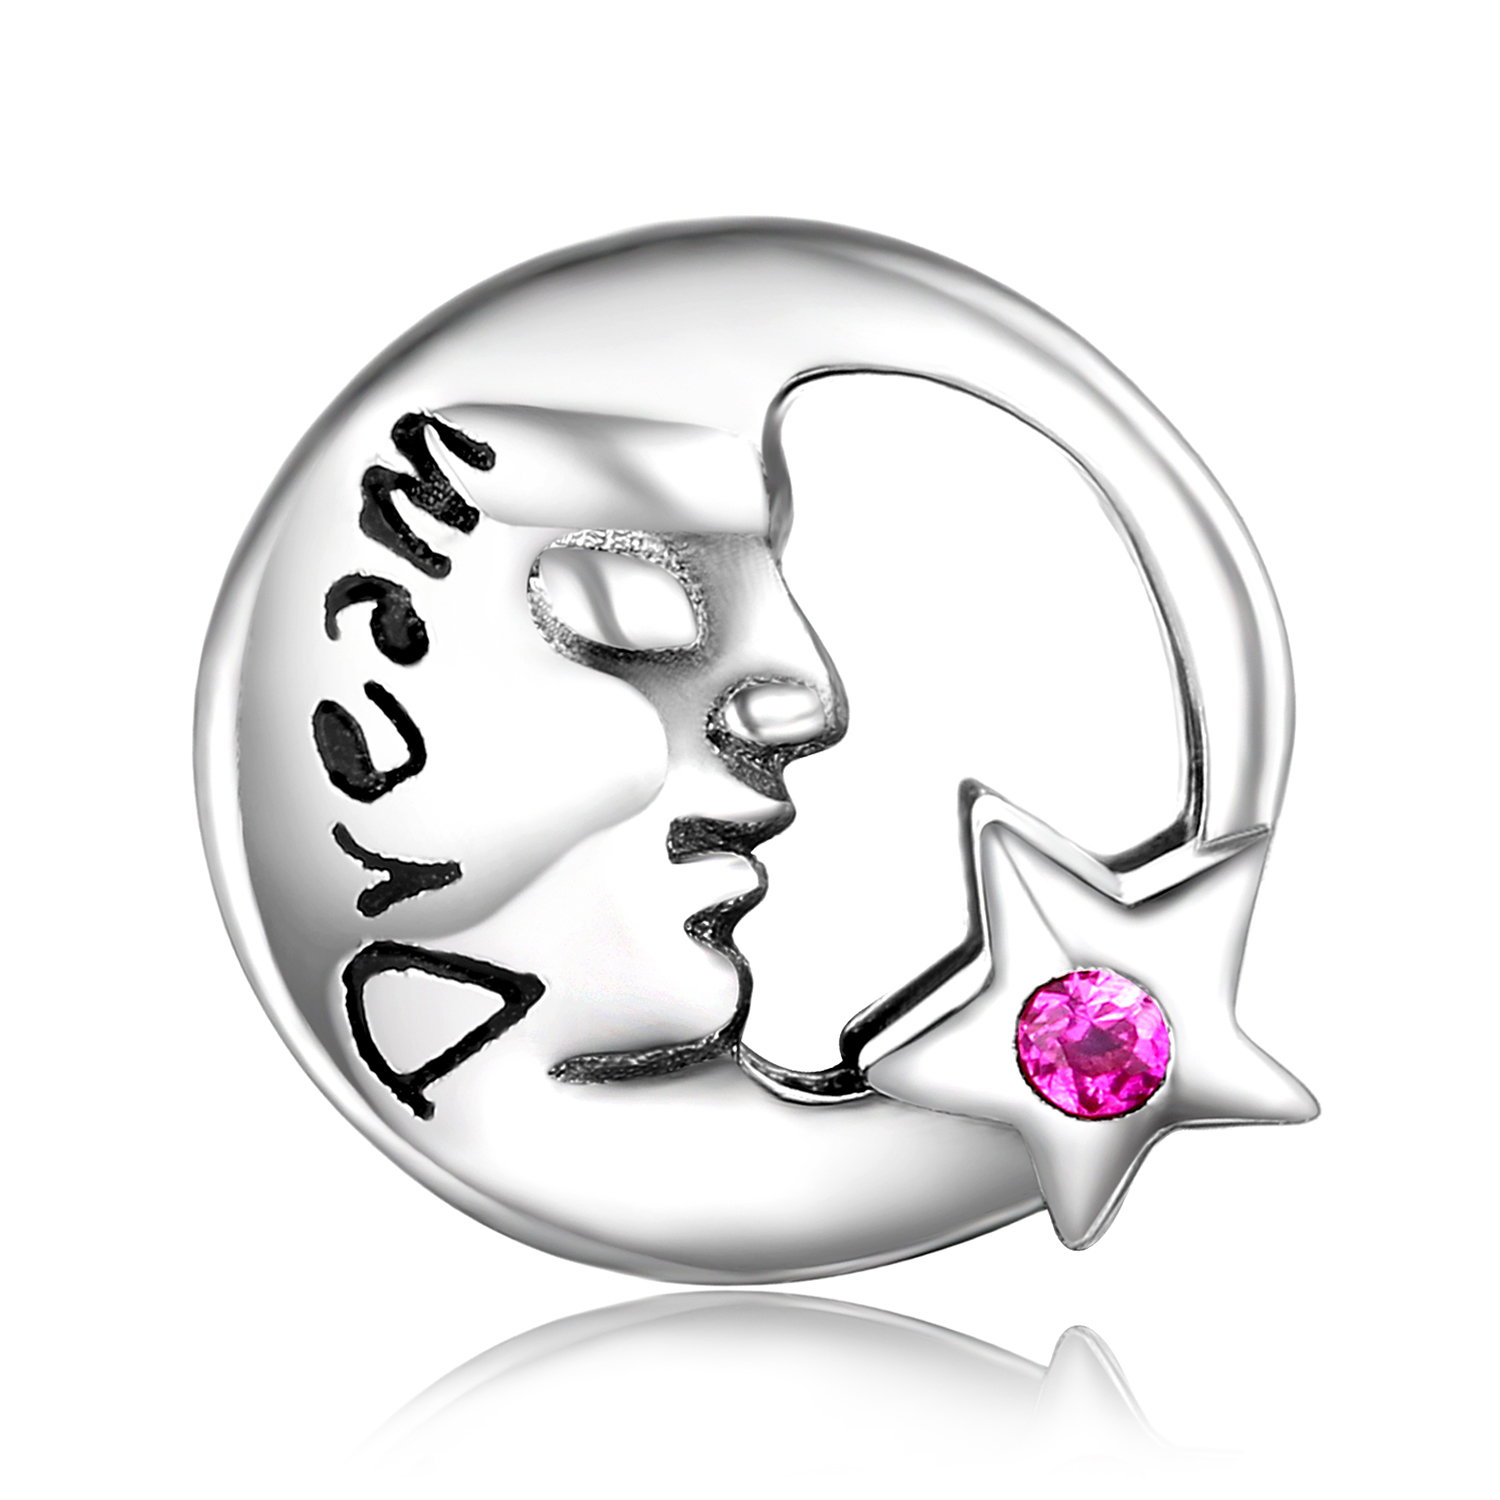 JewelryPalace Moon face 925 Sterling Silver Beads Charms Silver 925 Original For Bracelet Silver 925 original For Jewelry Making in Beads from Jewelry Accessories